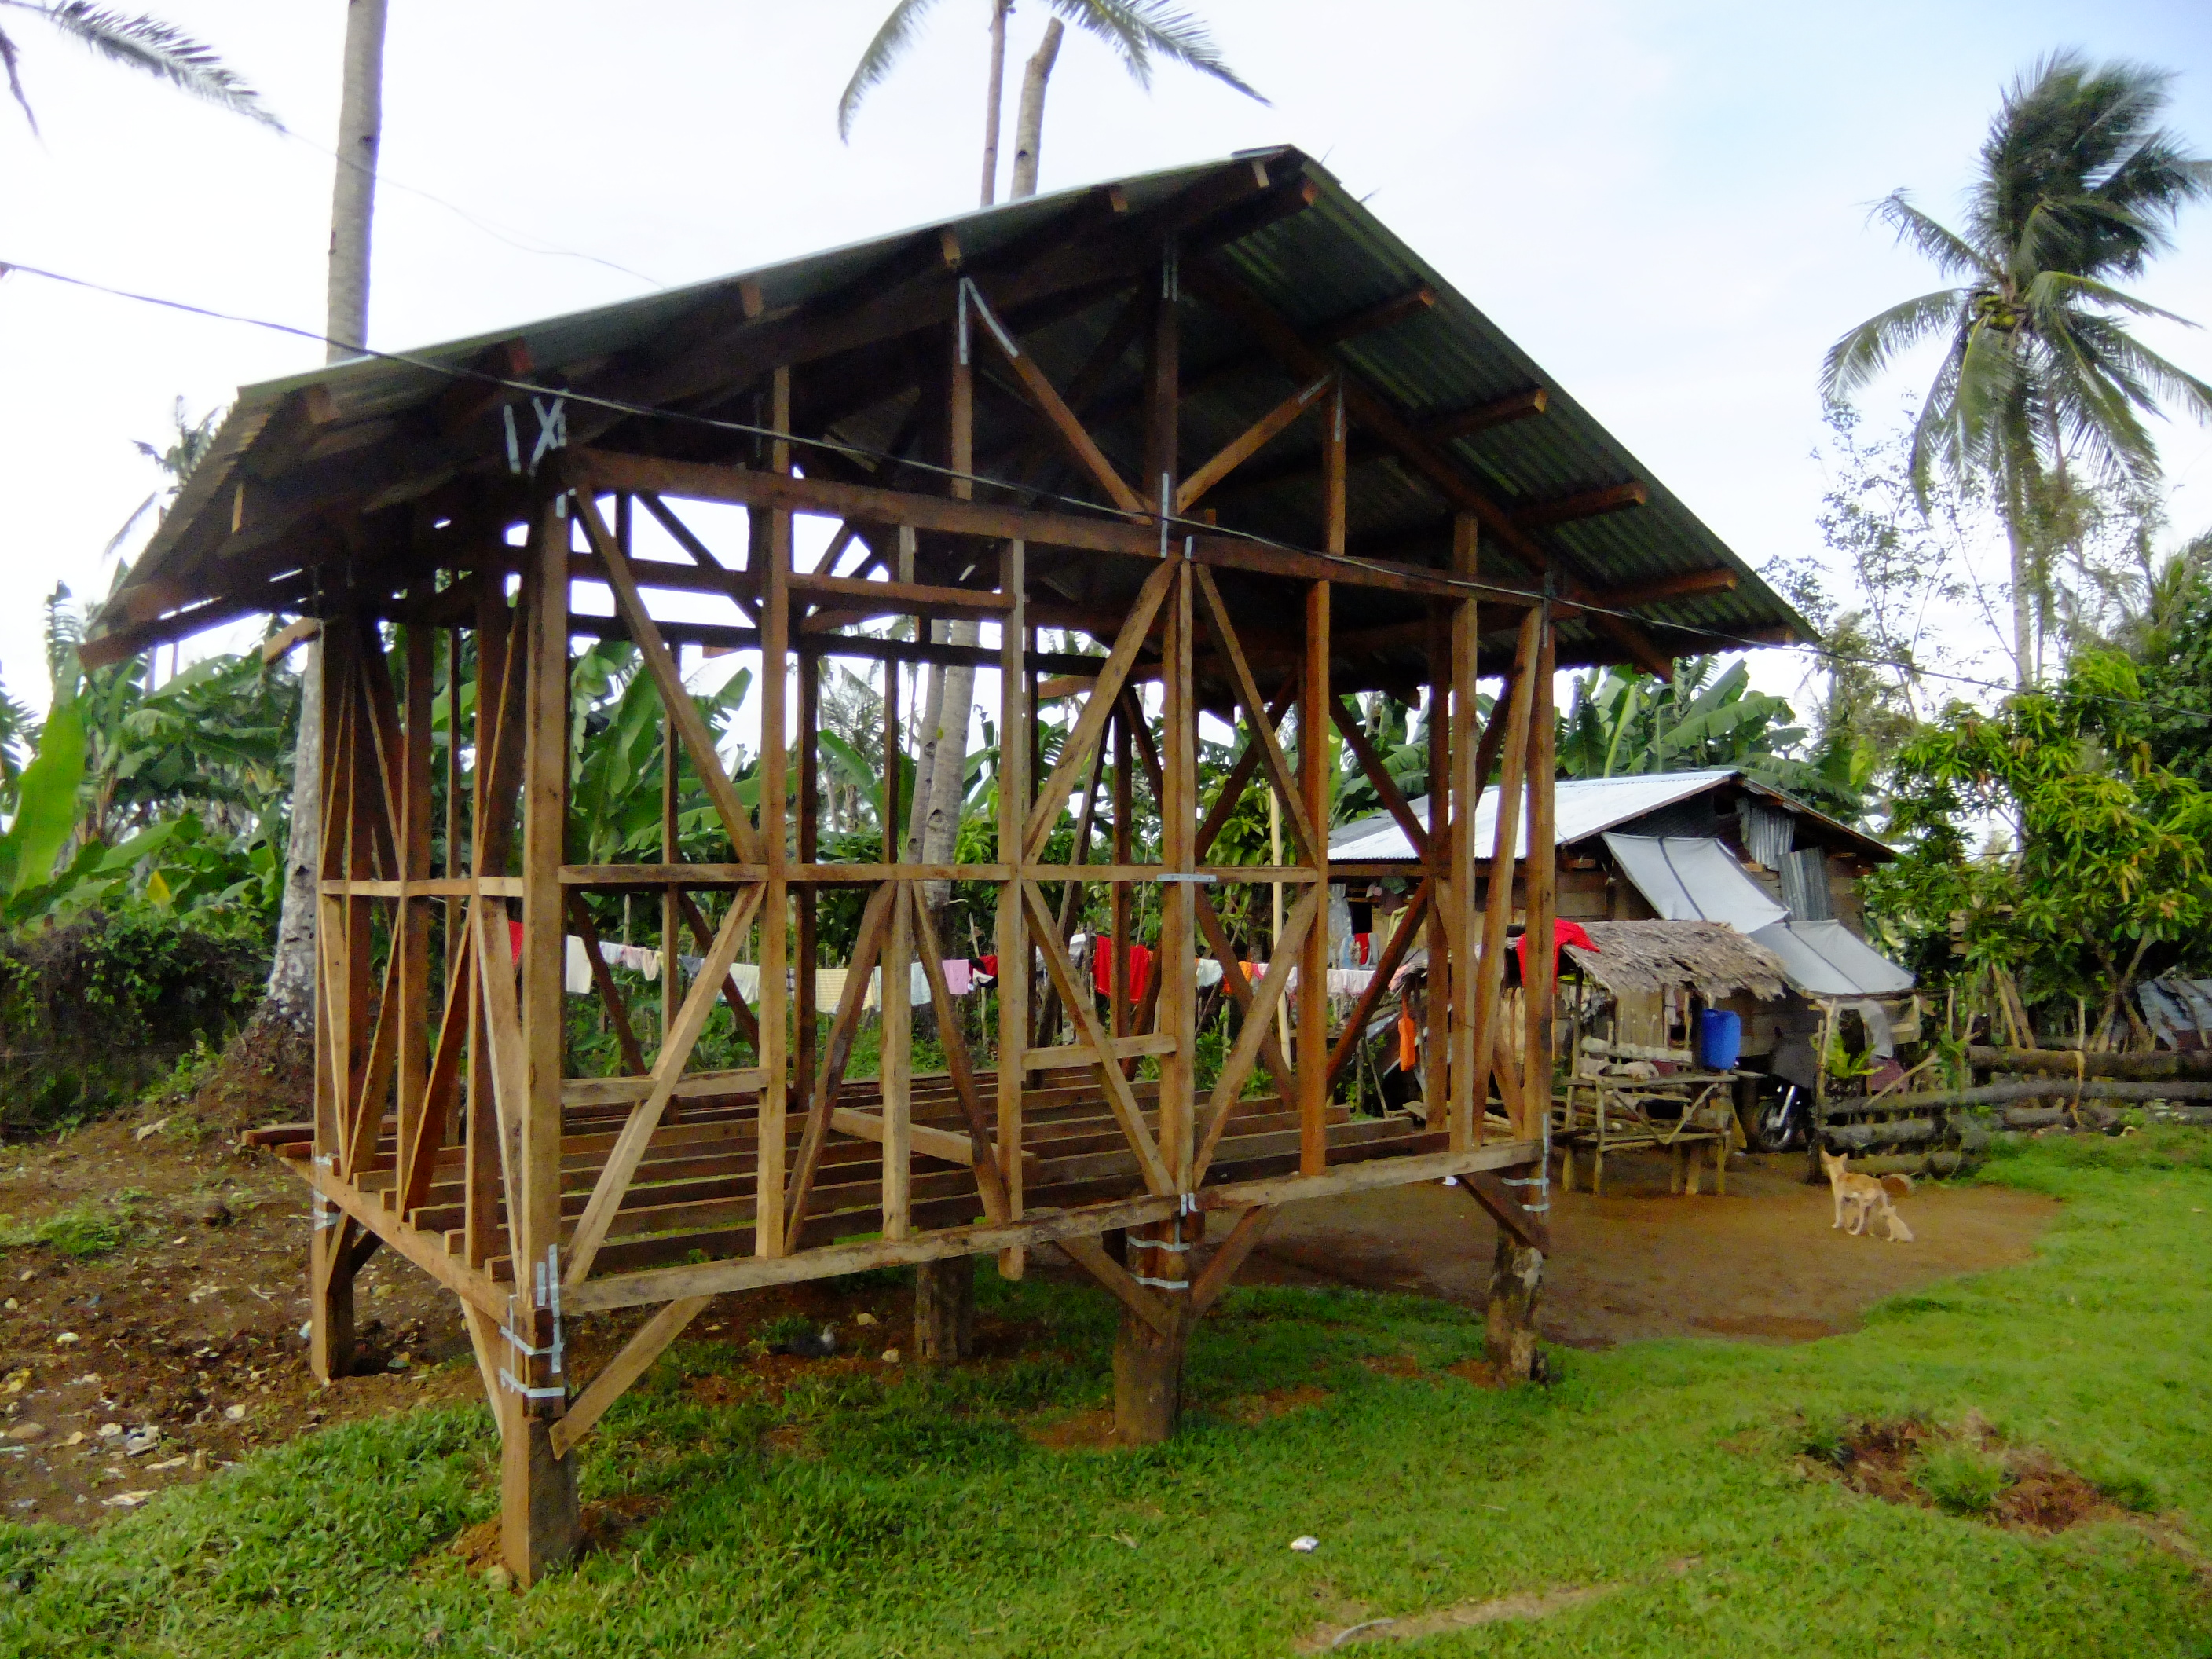 House being built with community cooperation ('bayanihan') approach in Leyte, Philippines